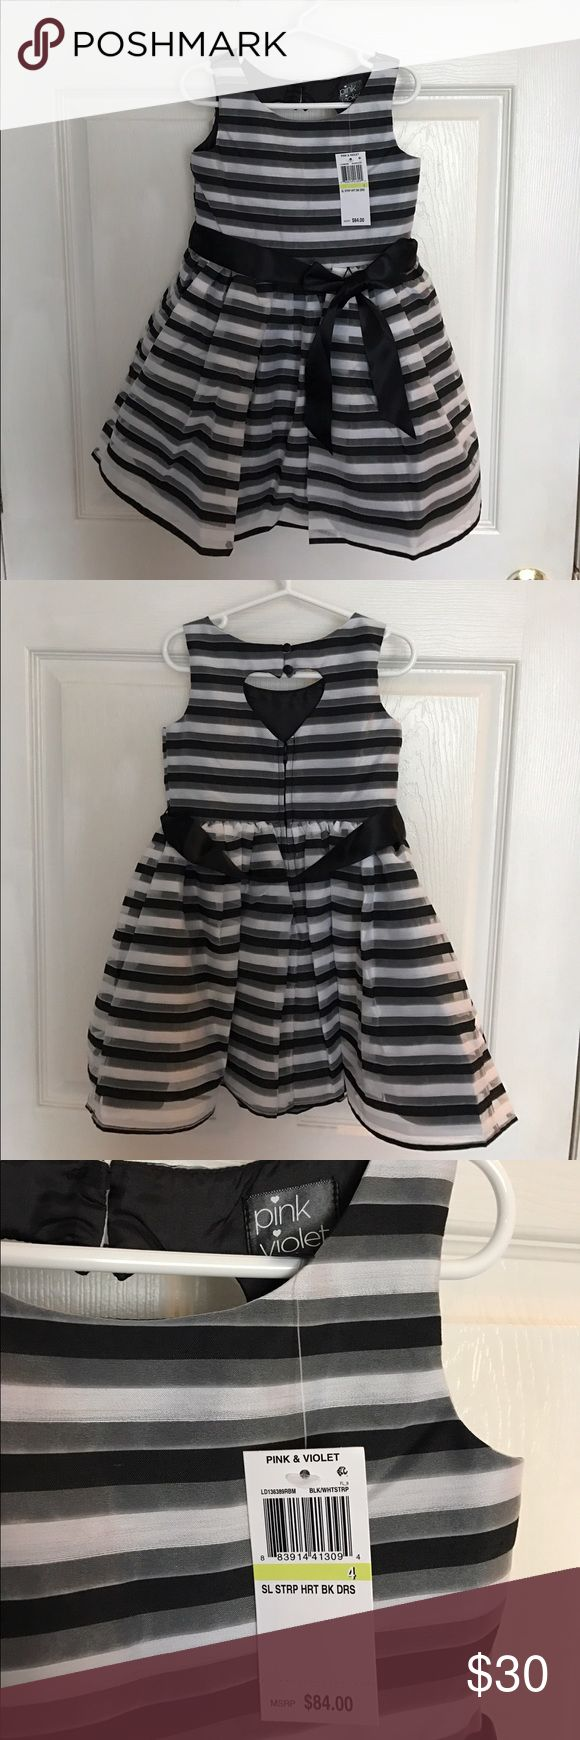 Girls striped heart back dress Girls size 4 black and white dress, sleeveless, ribbon/bow waist. Lining underneath. Zipper back with heart cut out. Brand: Pink & Violet. New With Tags. Pink & Violet Dresses Formal